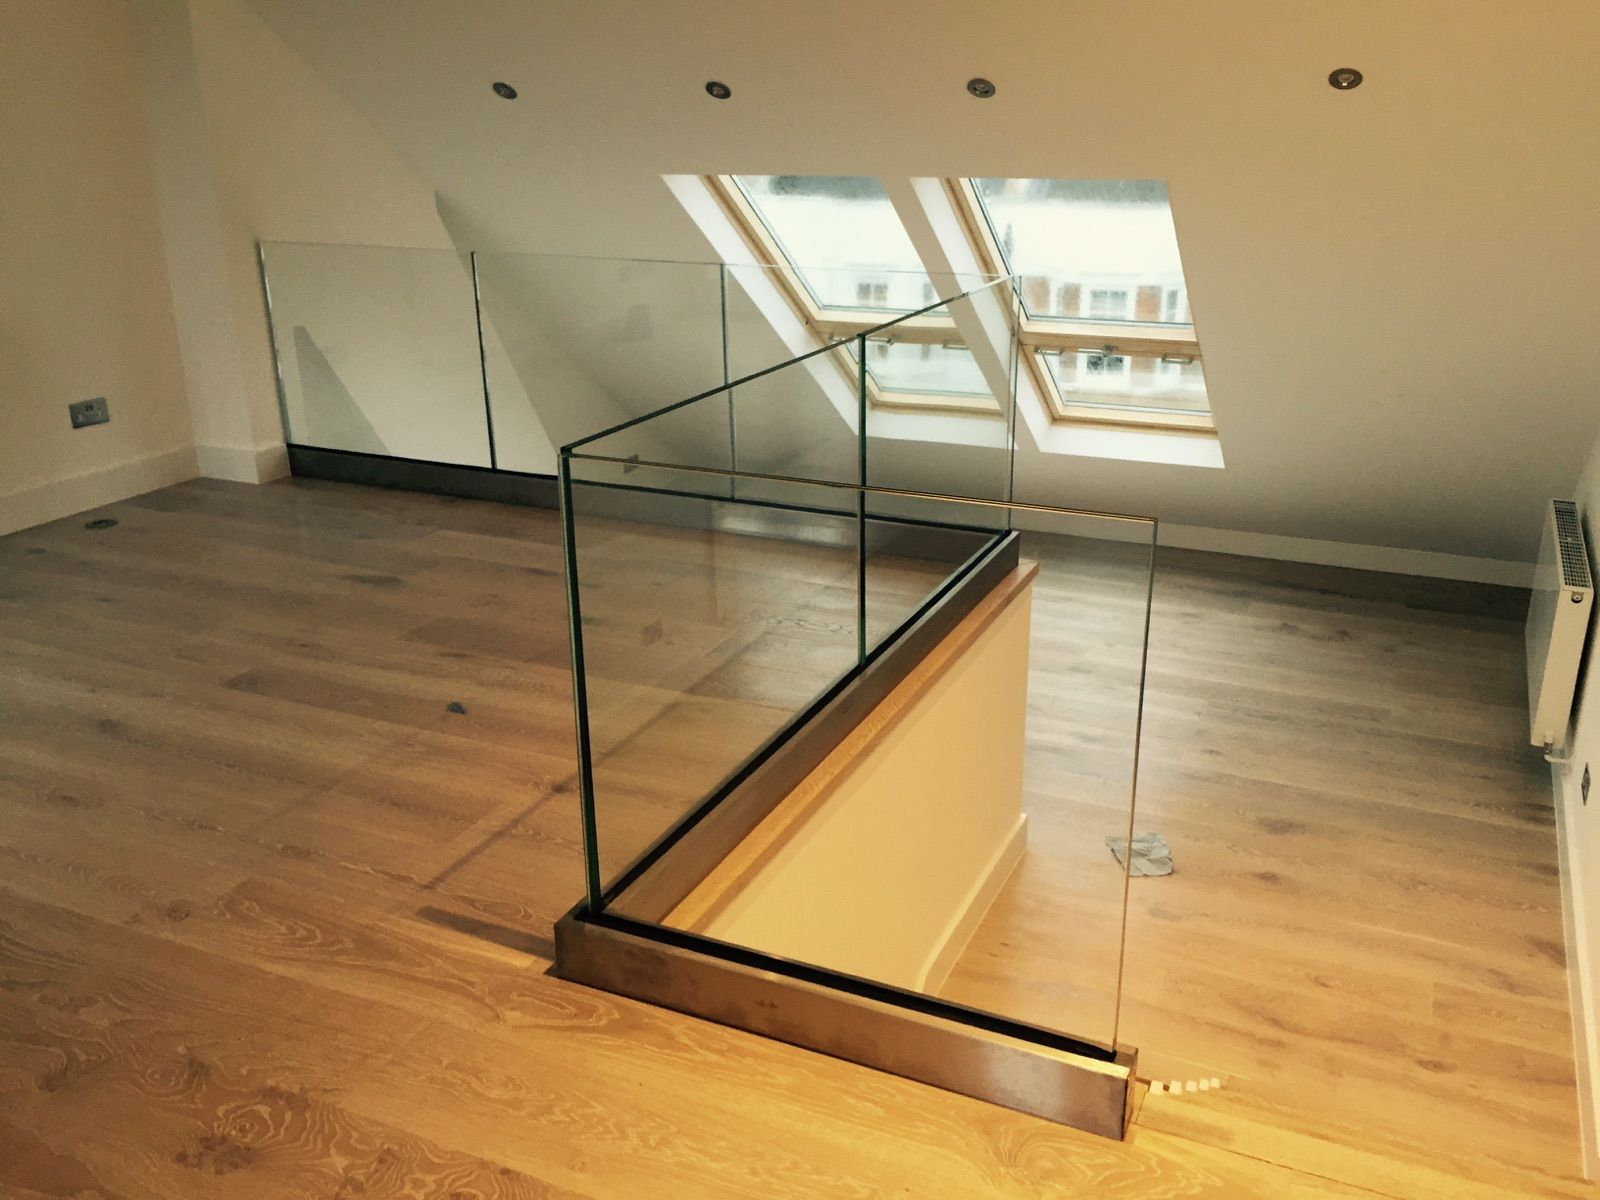 Best Internal Frameless Glass Balustrade With Base Fixed U 400 x 300